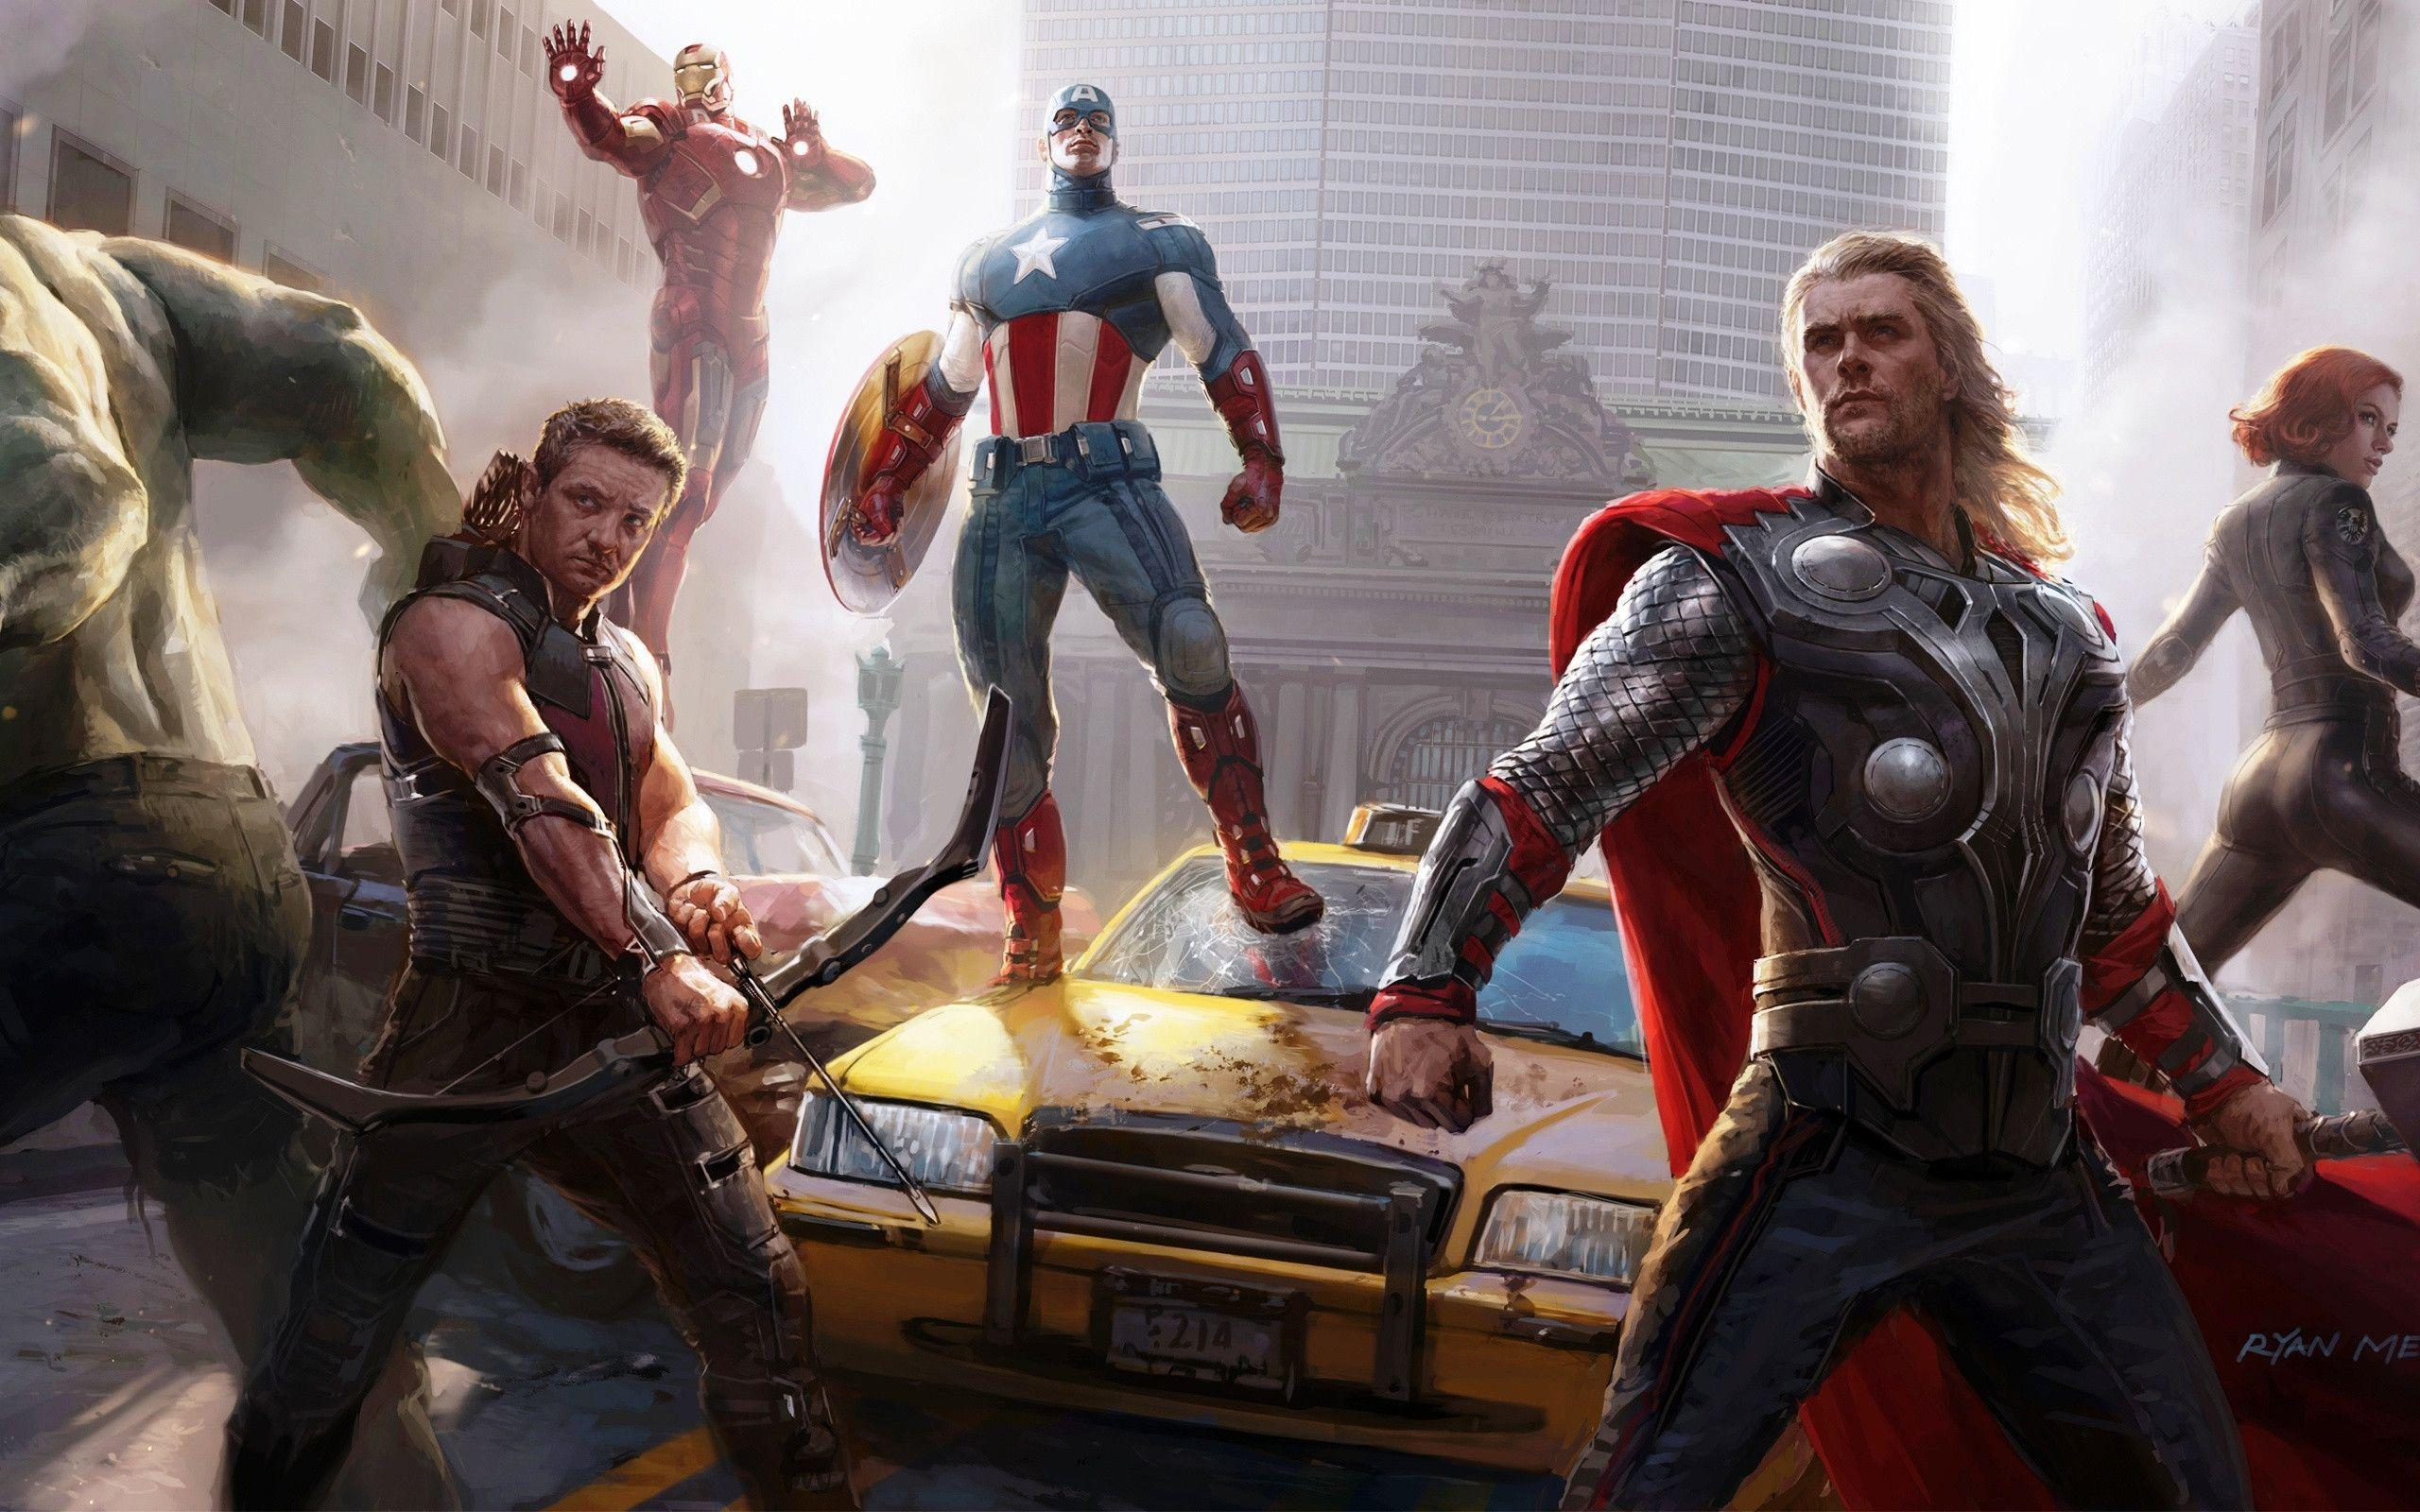 The Avengers Wallpapers - Page 1 - HD Wallpapers